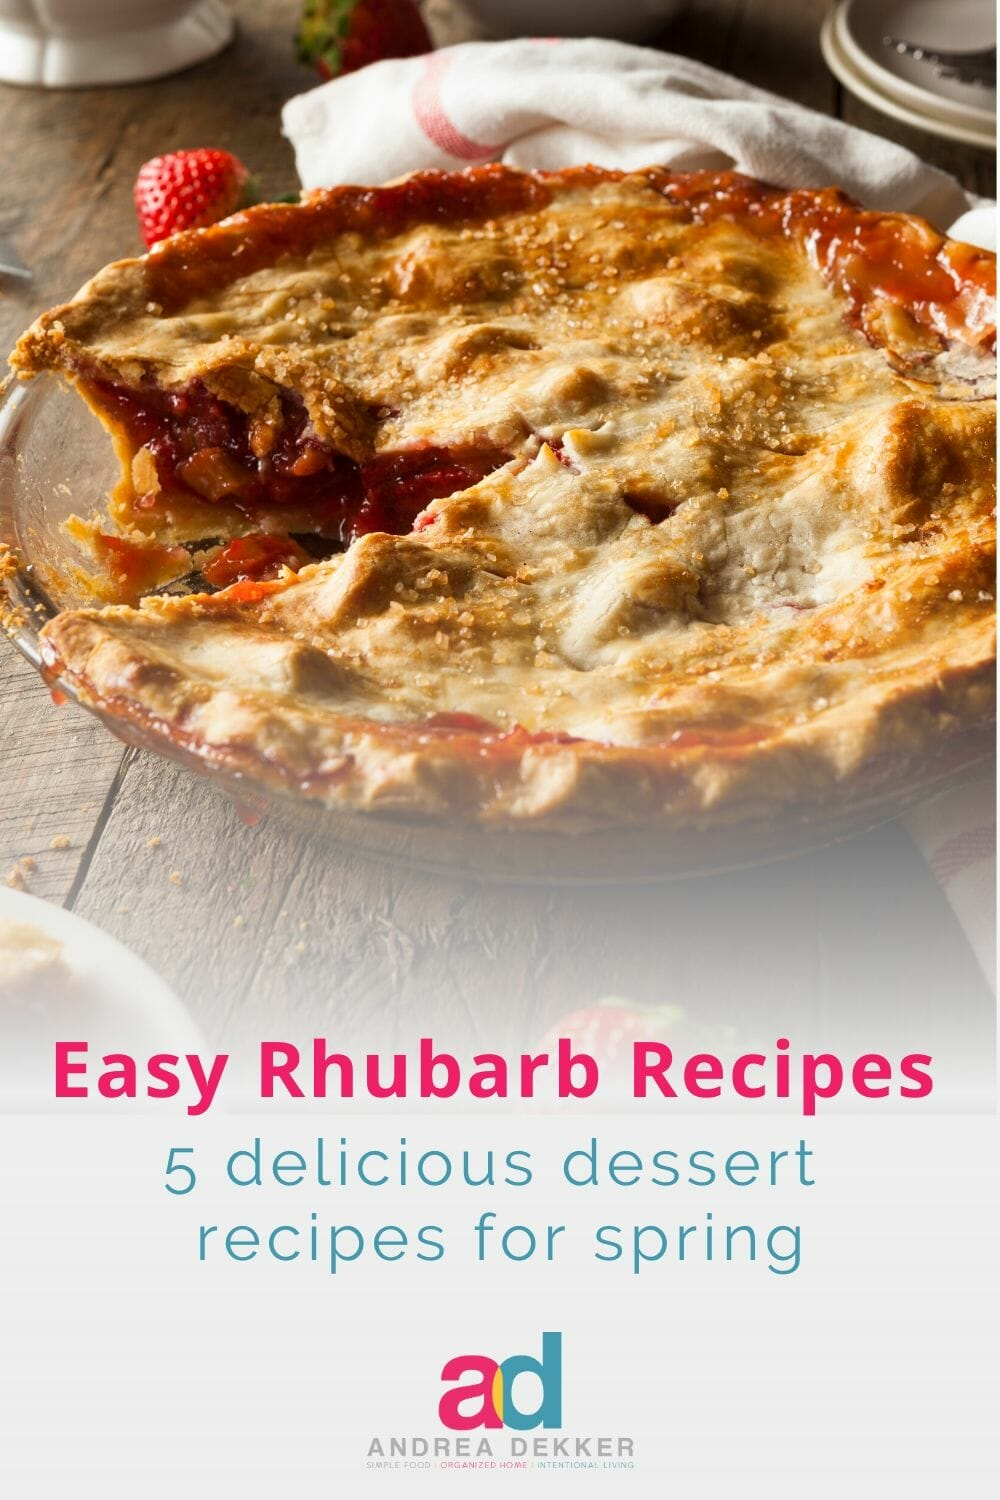 Rhubarb is one of my favorite springtime treats -- thankfully, there are plenty of easy rhubarb dessert recipes to satisfy my hankering for this tart and tangy fruit!  via @andreadekker